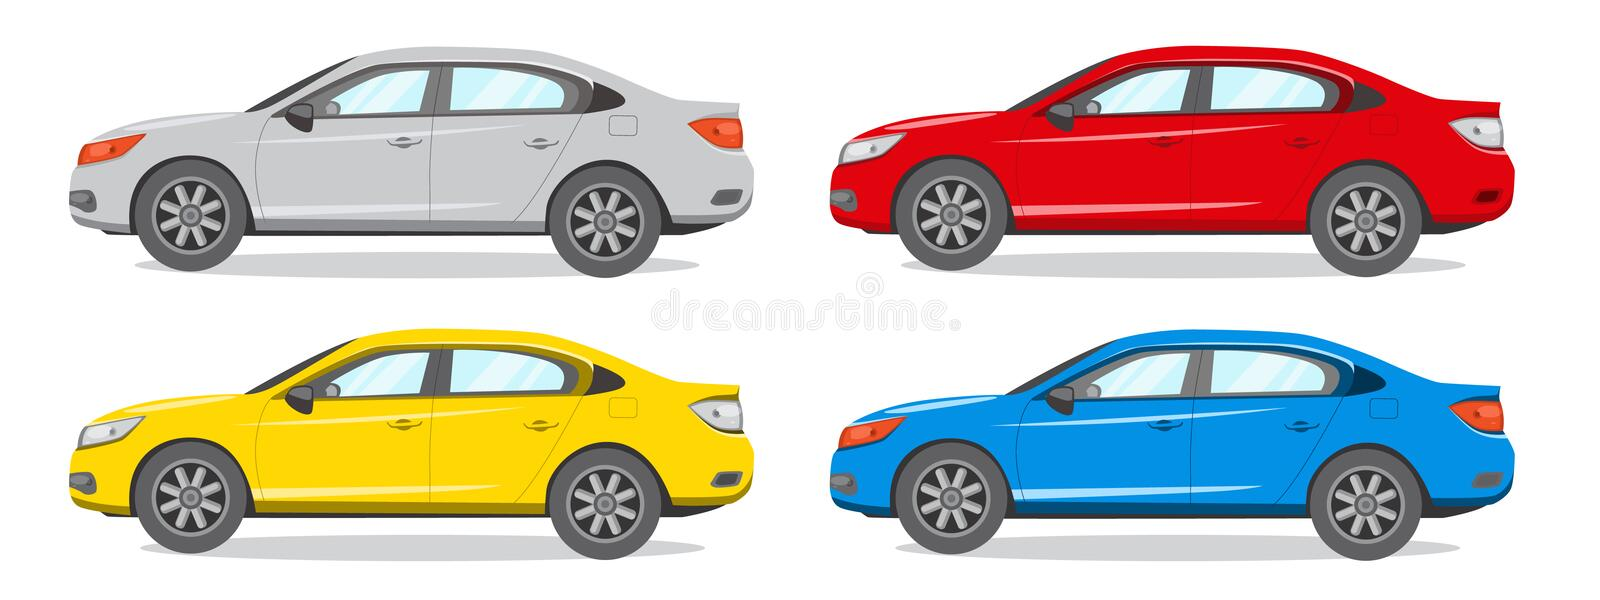 Sedan Different Color Vector Illustration. Car Icon. These are four pictures of sedan cars with different colors. there are red, yellow, blue and gray royalty free illustration